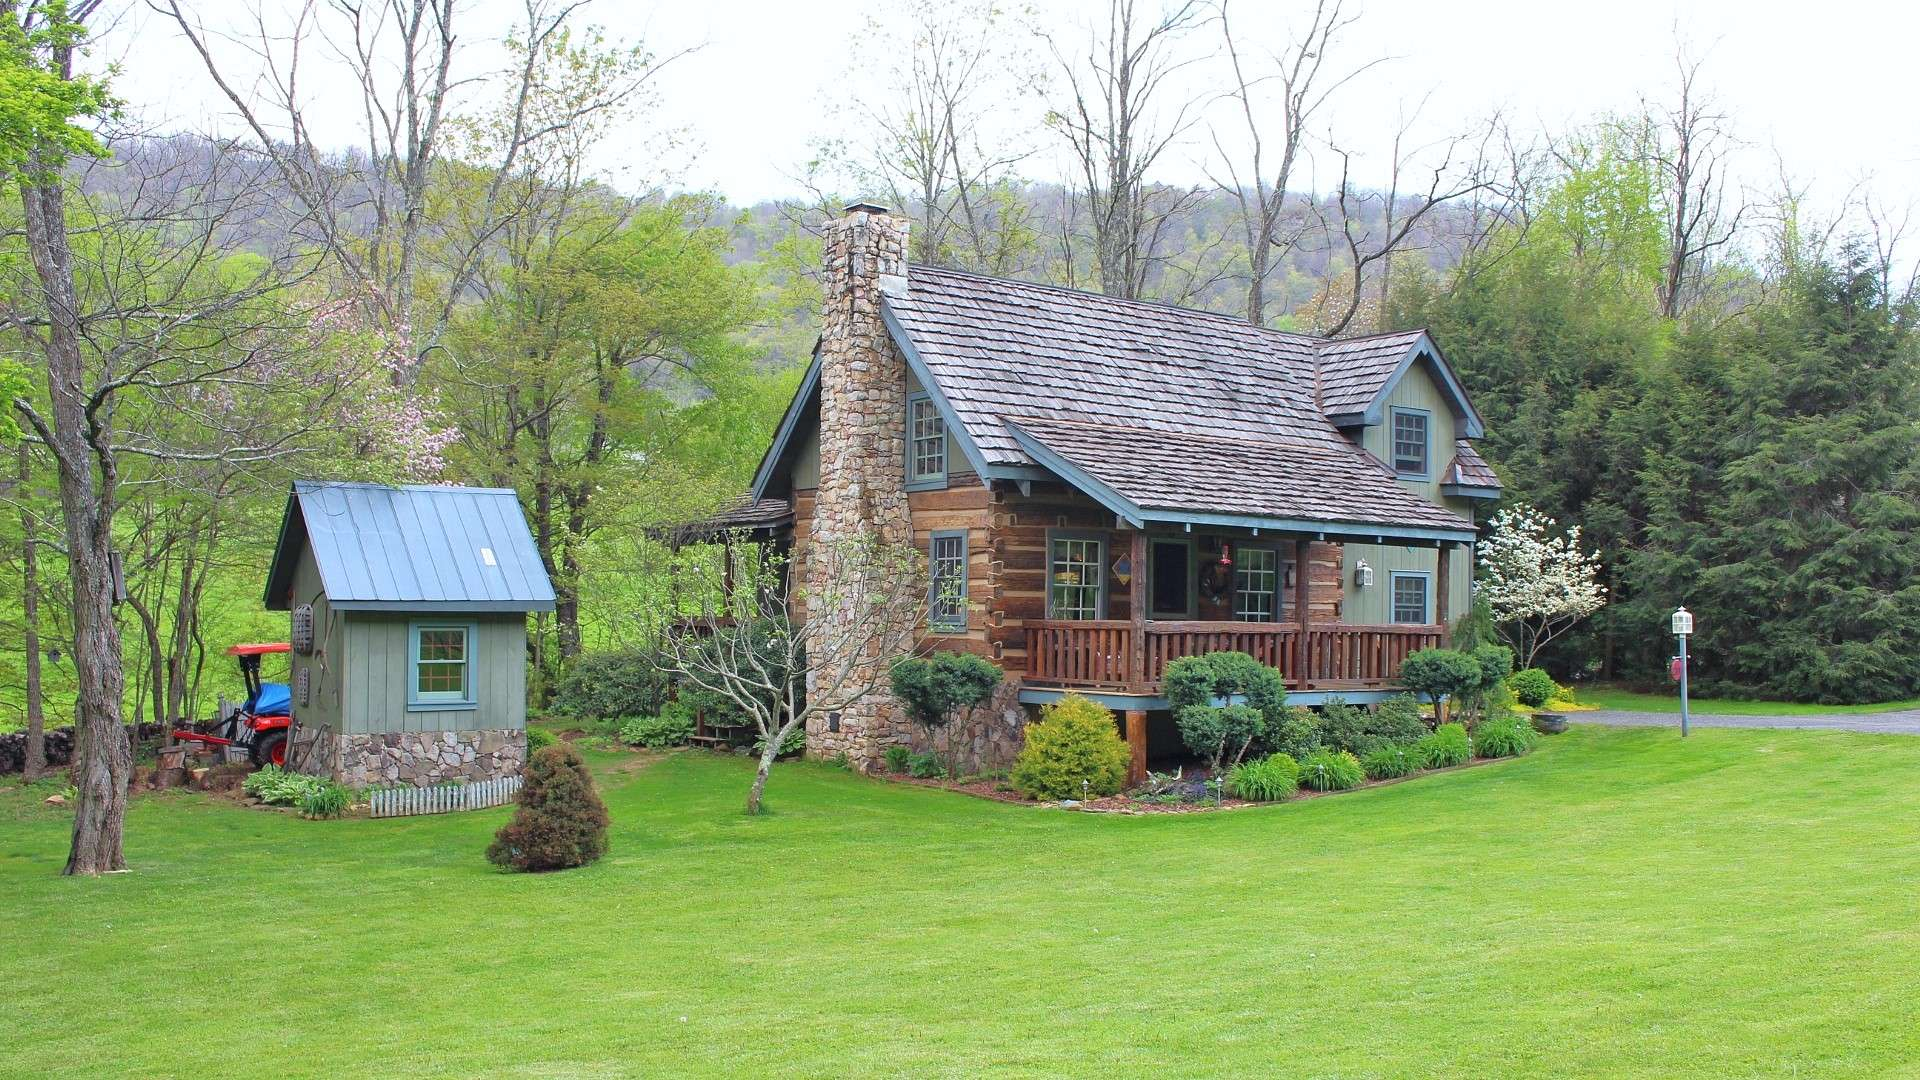 Offered at $279,900, this rustic 2-bedroom, 2-bath log cabin with wood floors, stone fireplace, many custom features, covered front and side porch, beautifully landscaped setting with fenced garden area, craftsman style outbuilding/workshop, another outbuilding and located in Chestnut Creek, just a short drive to West Jefferson, is perfect for your NC High Country retreat or full time home.